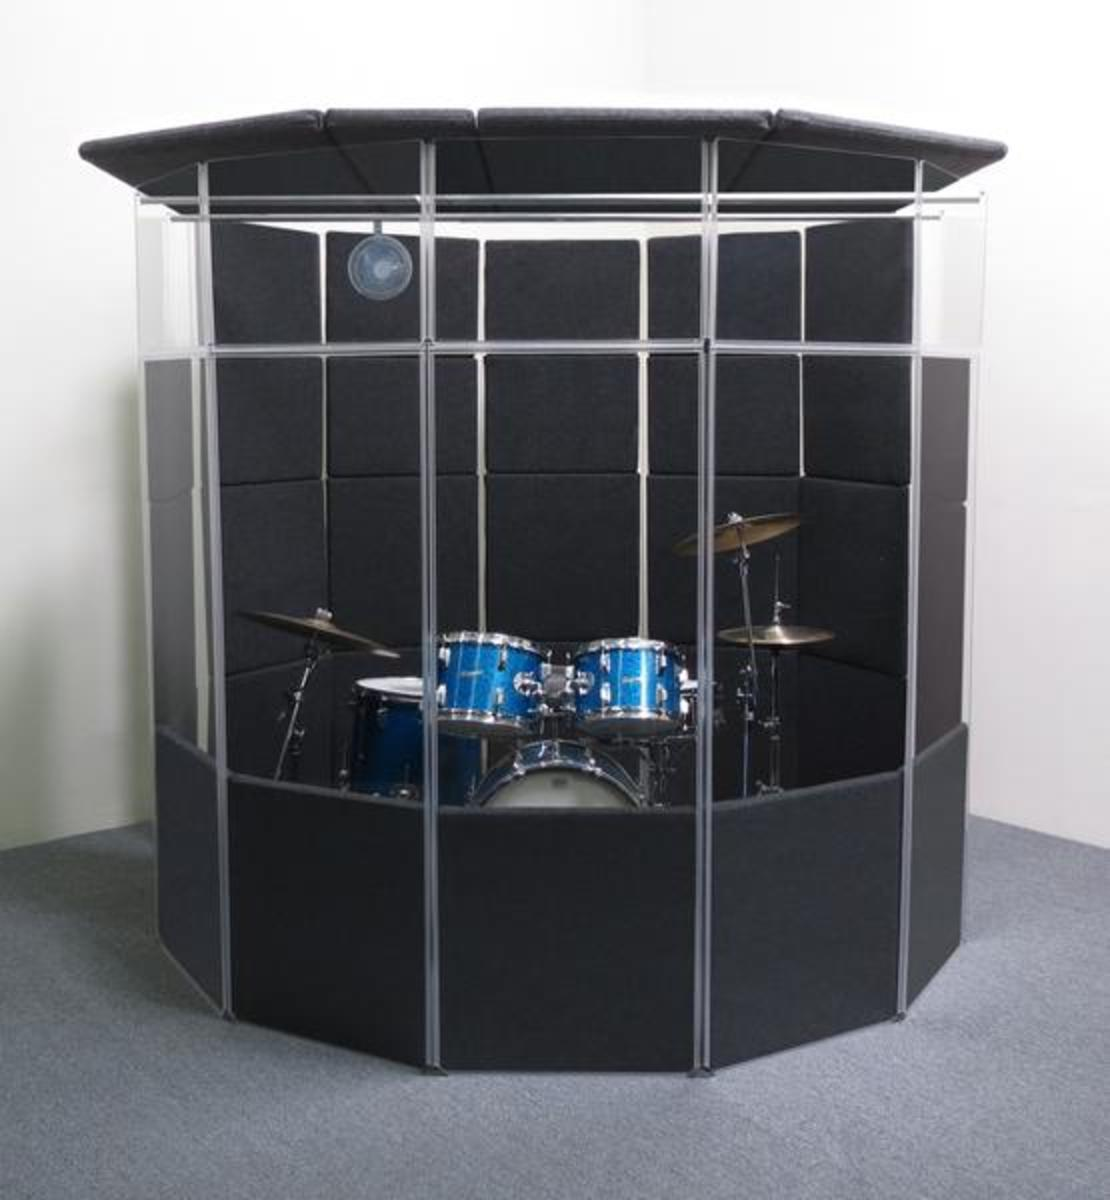 The next step down from a professionally built studio is an isolation booth like this drum booth, but even these are prohibitively expensive for most home studios.